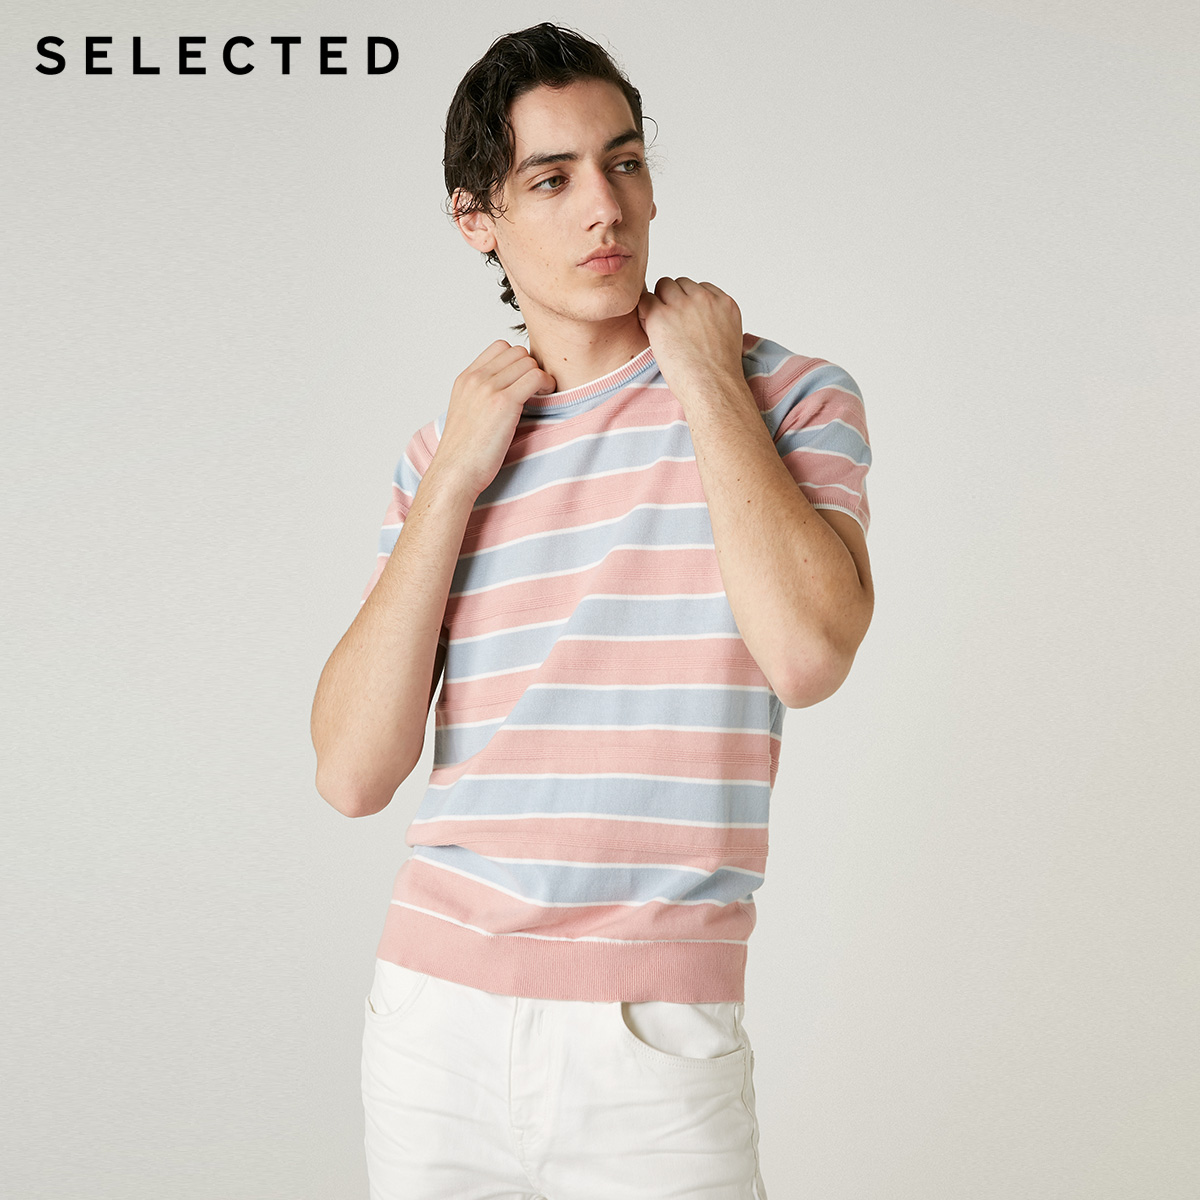 SELECTED Men's 100% Cotton Striped Short-sleeved Casual Contrast Stitching T-shirt S | 419101538